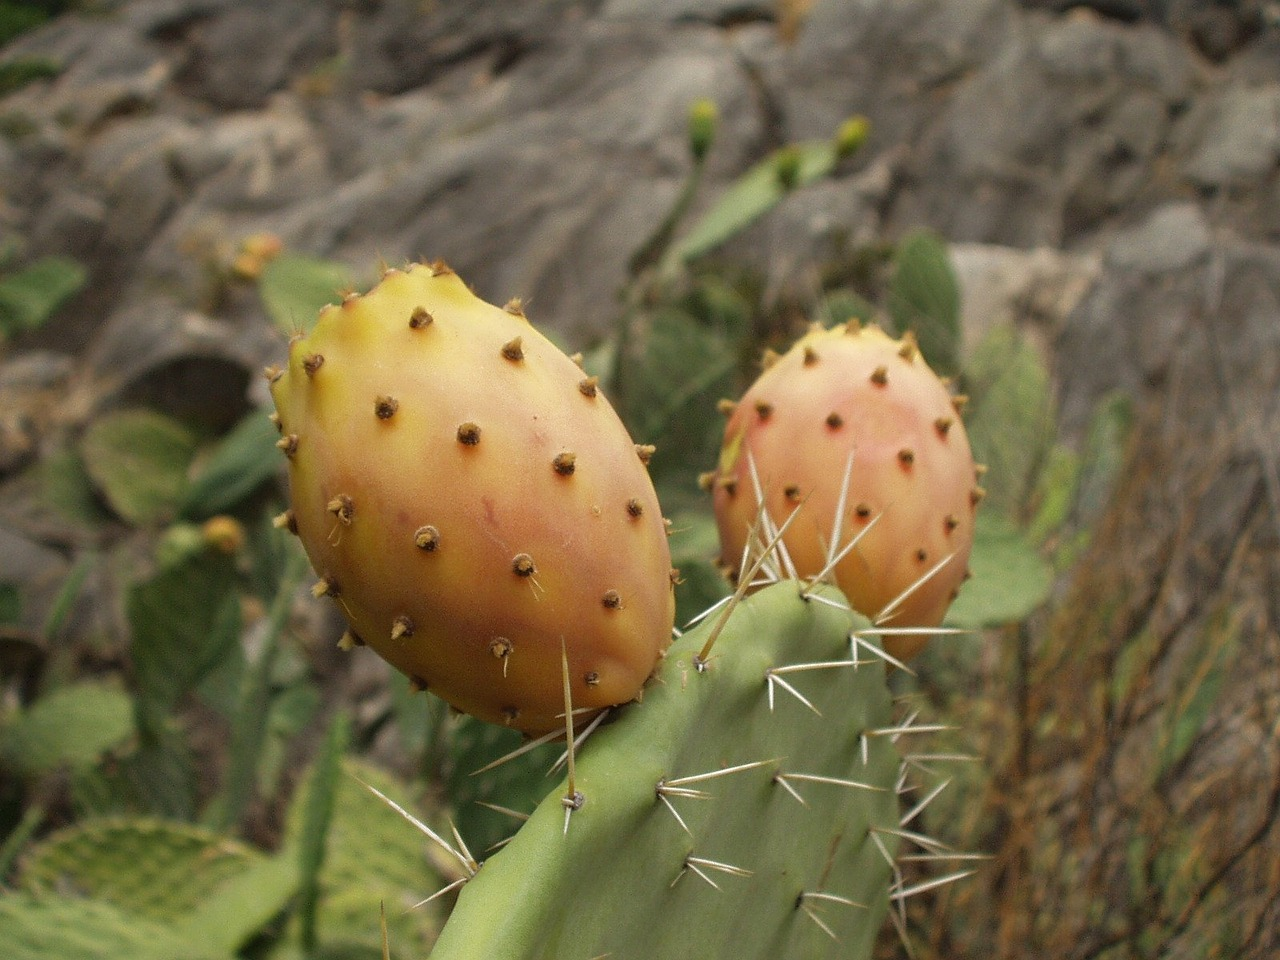 sardinia prickly pear cactus free photo